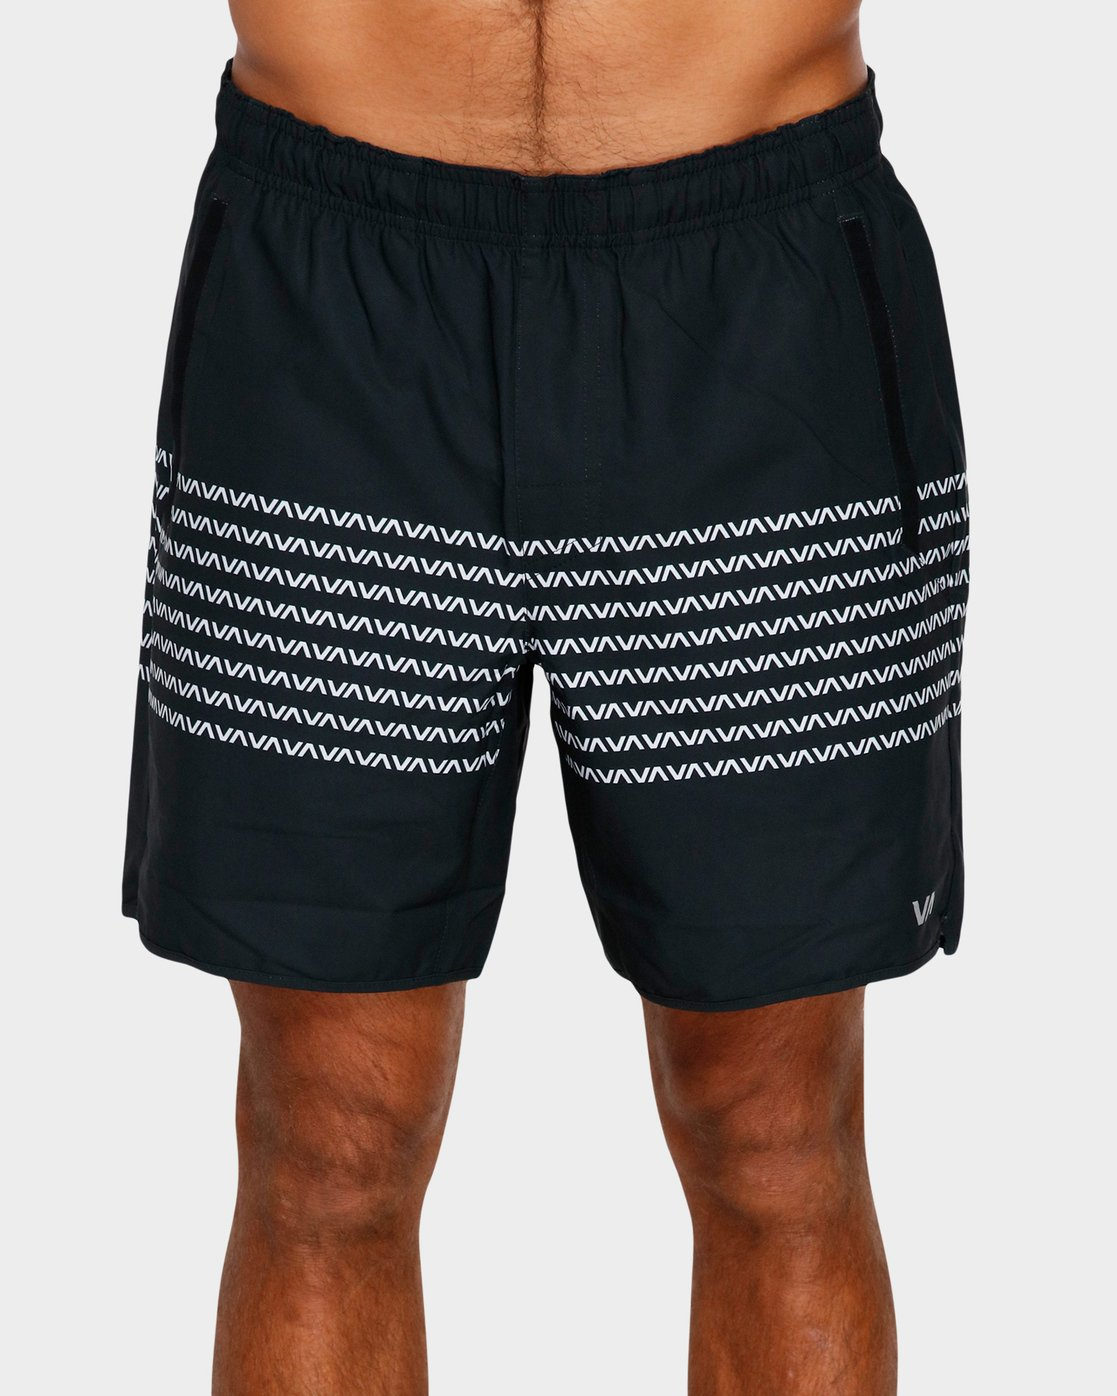 1 YOGGER STRETCH SHORTS Black R393313 RVCA